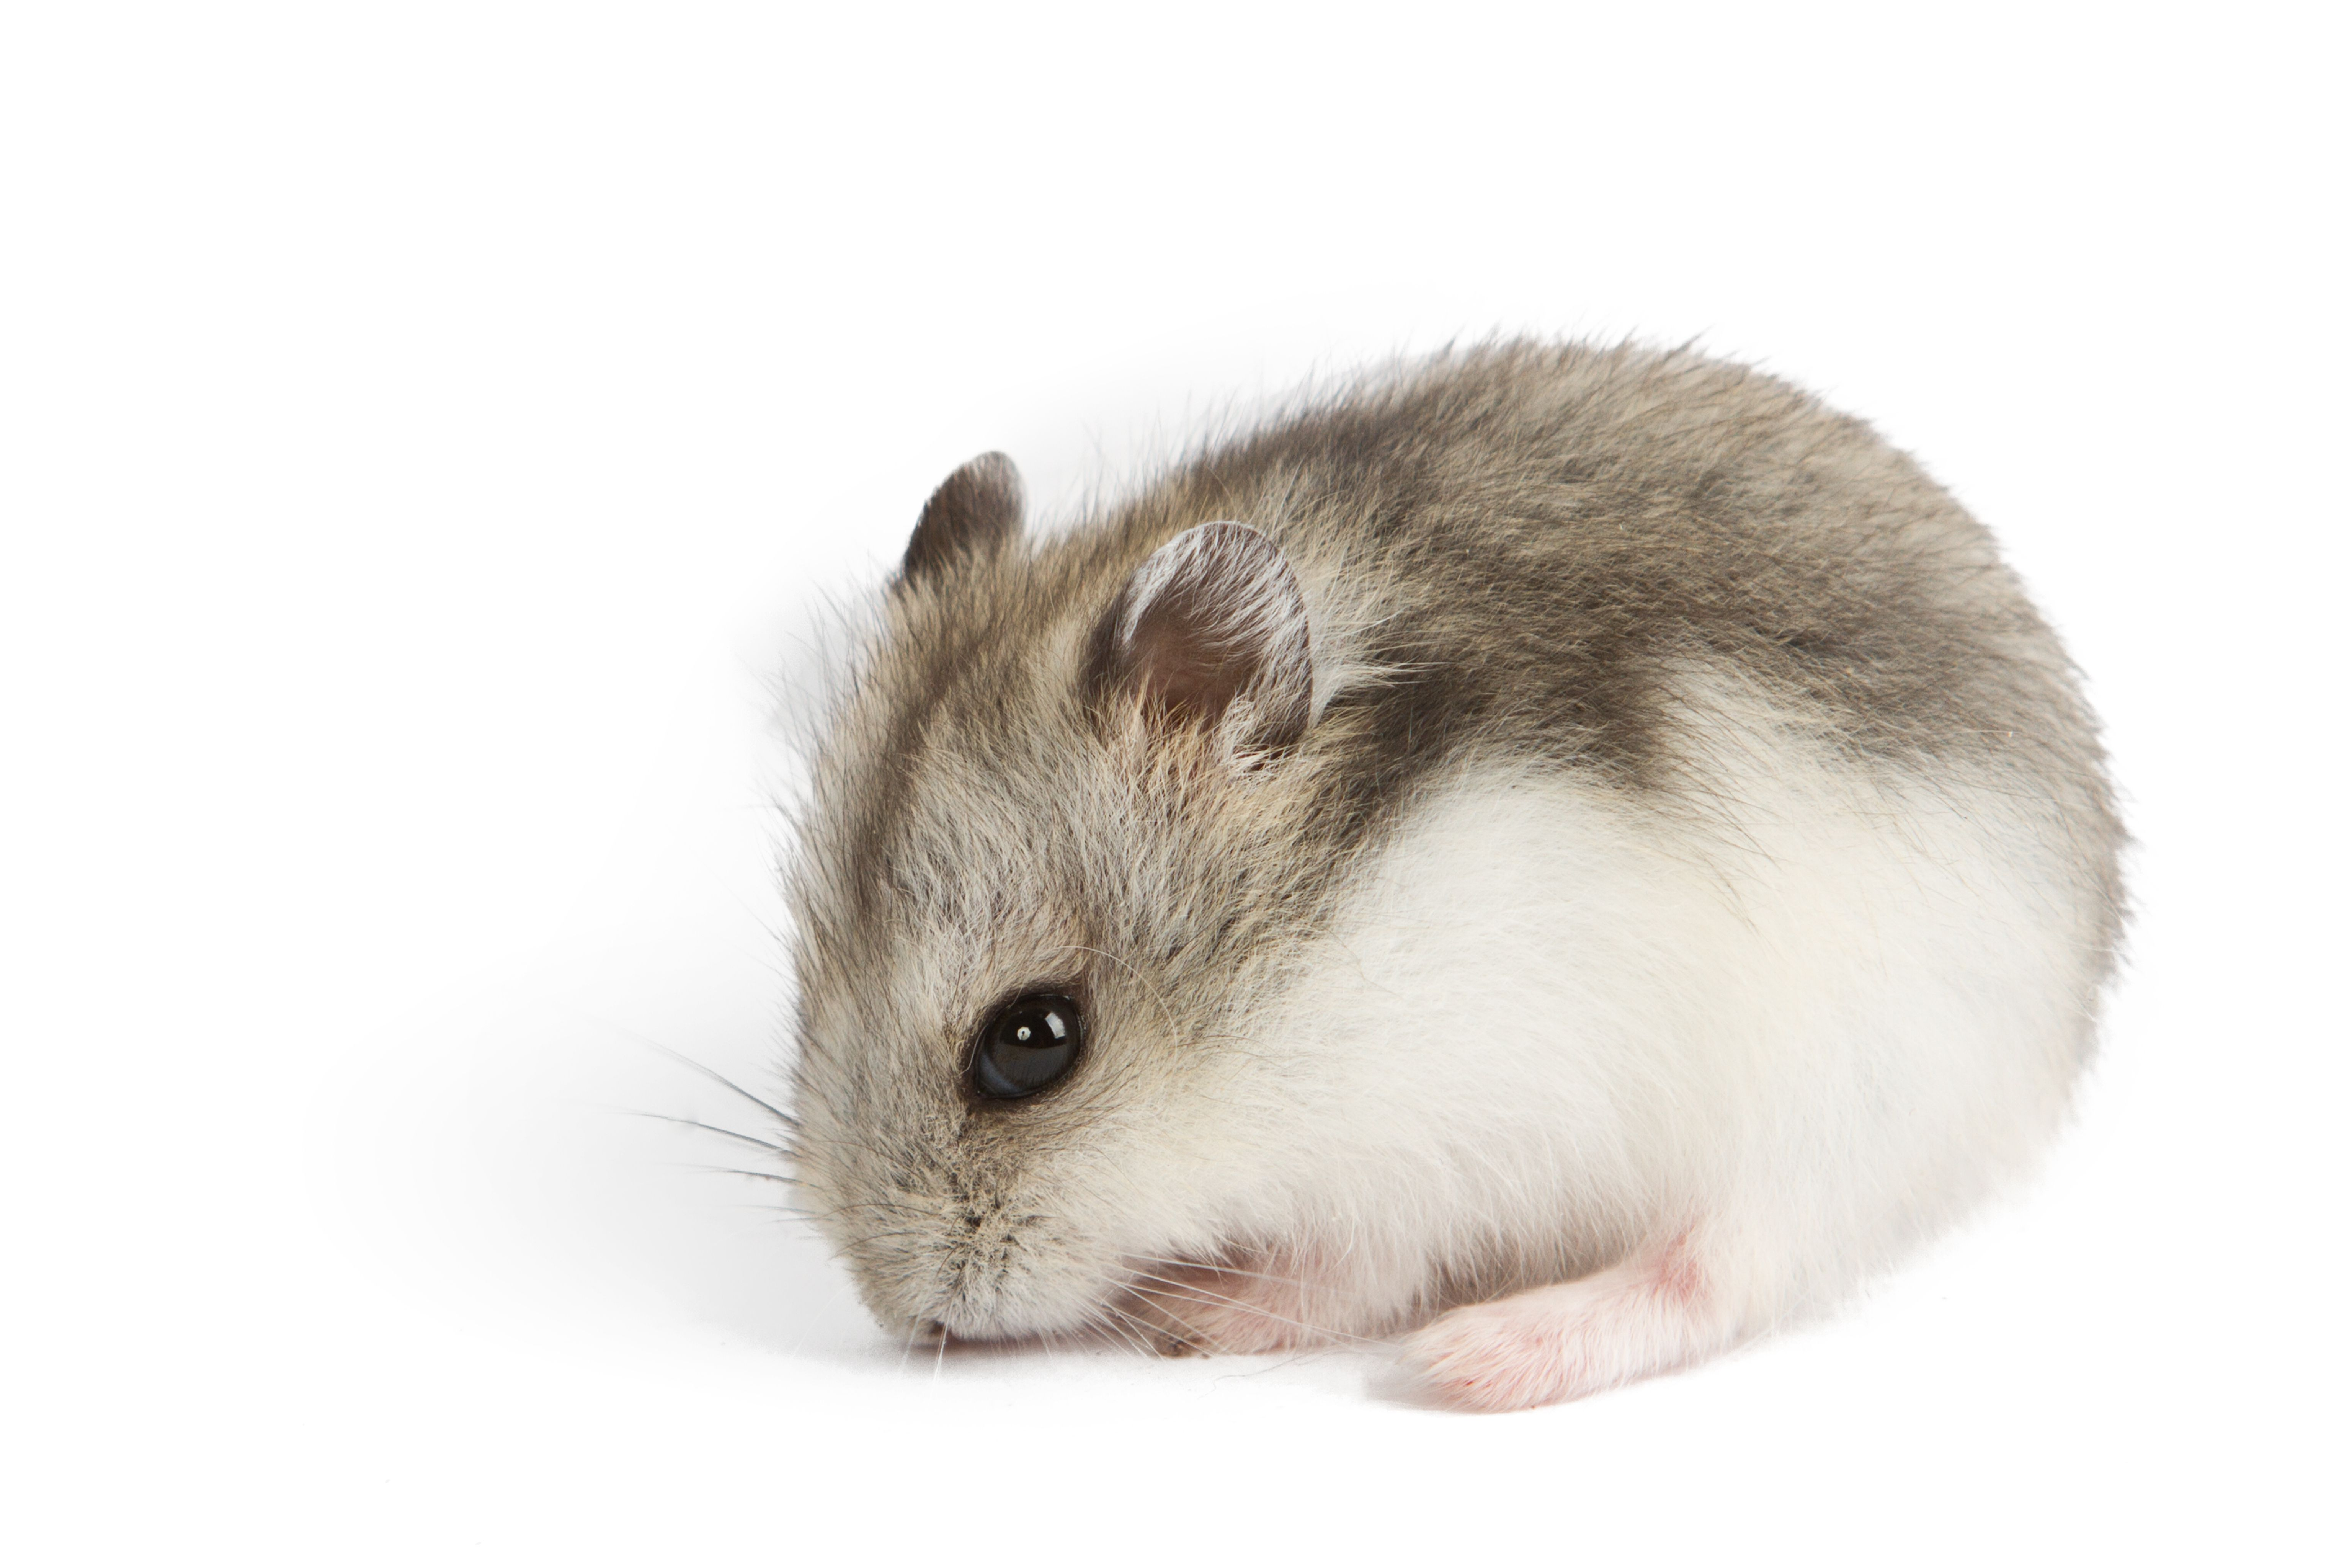 Hamster Breeds: Types of Hamsters